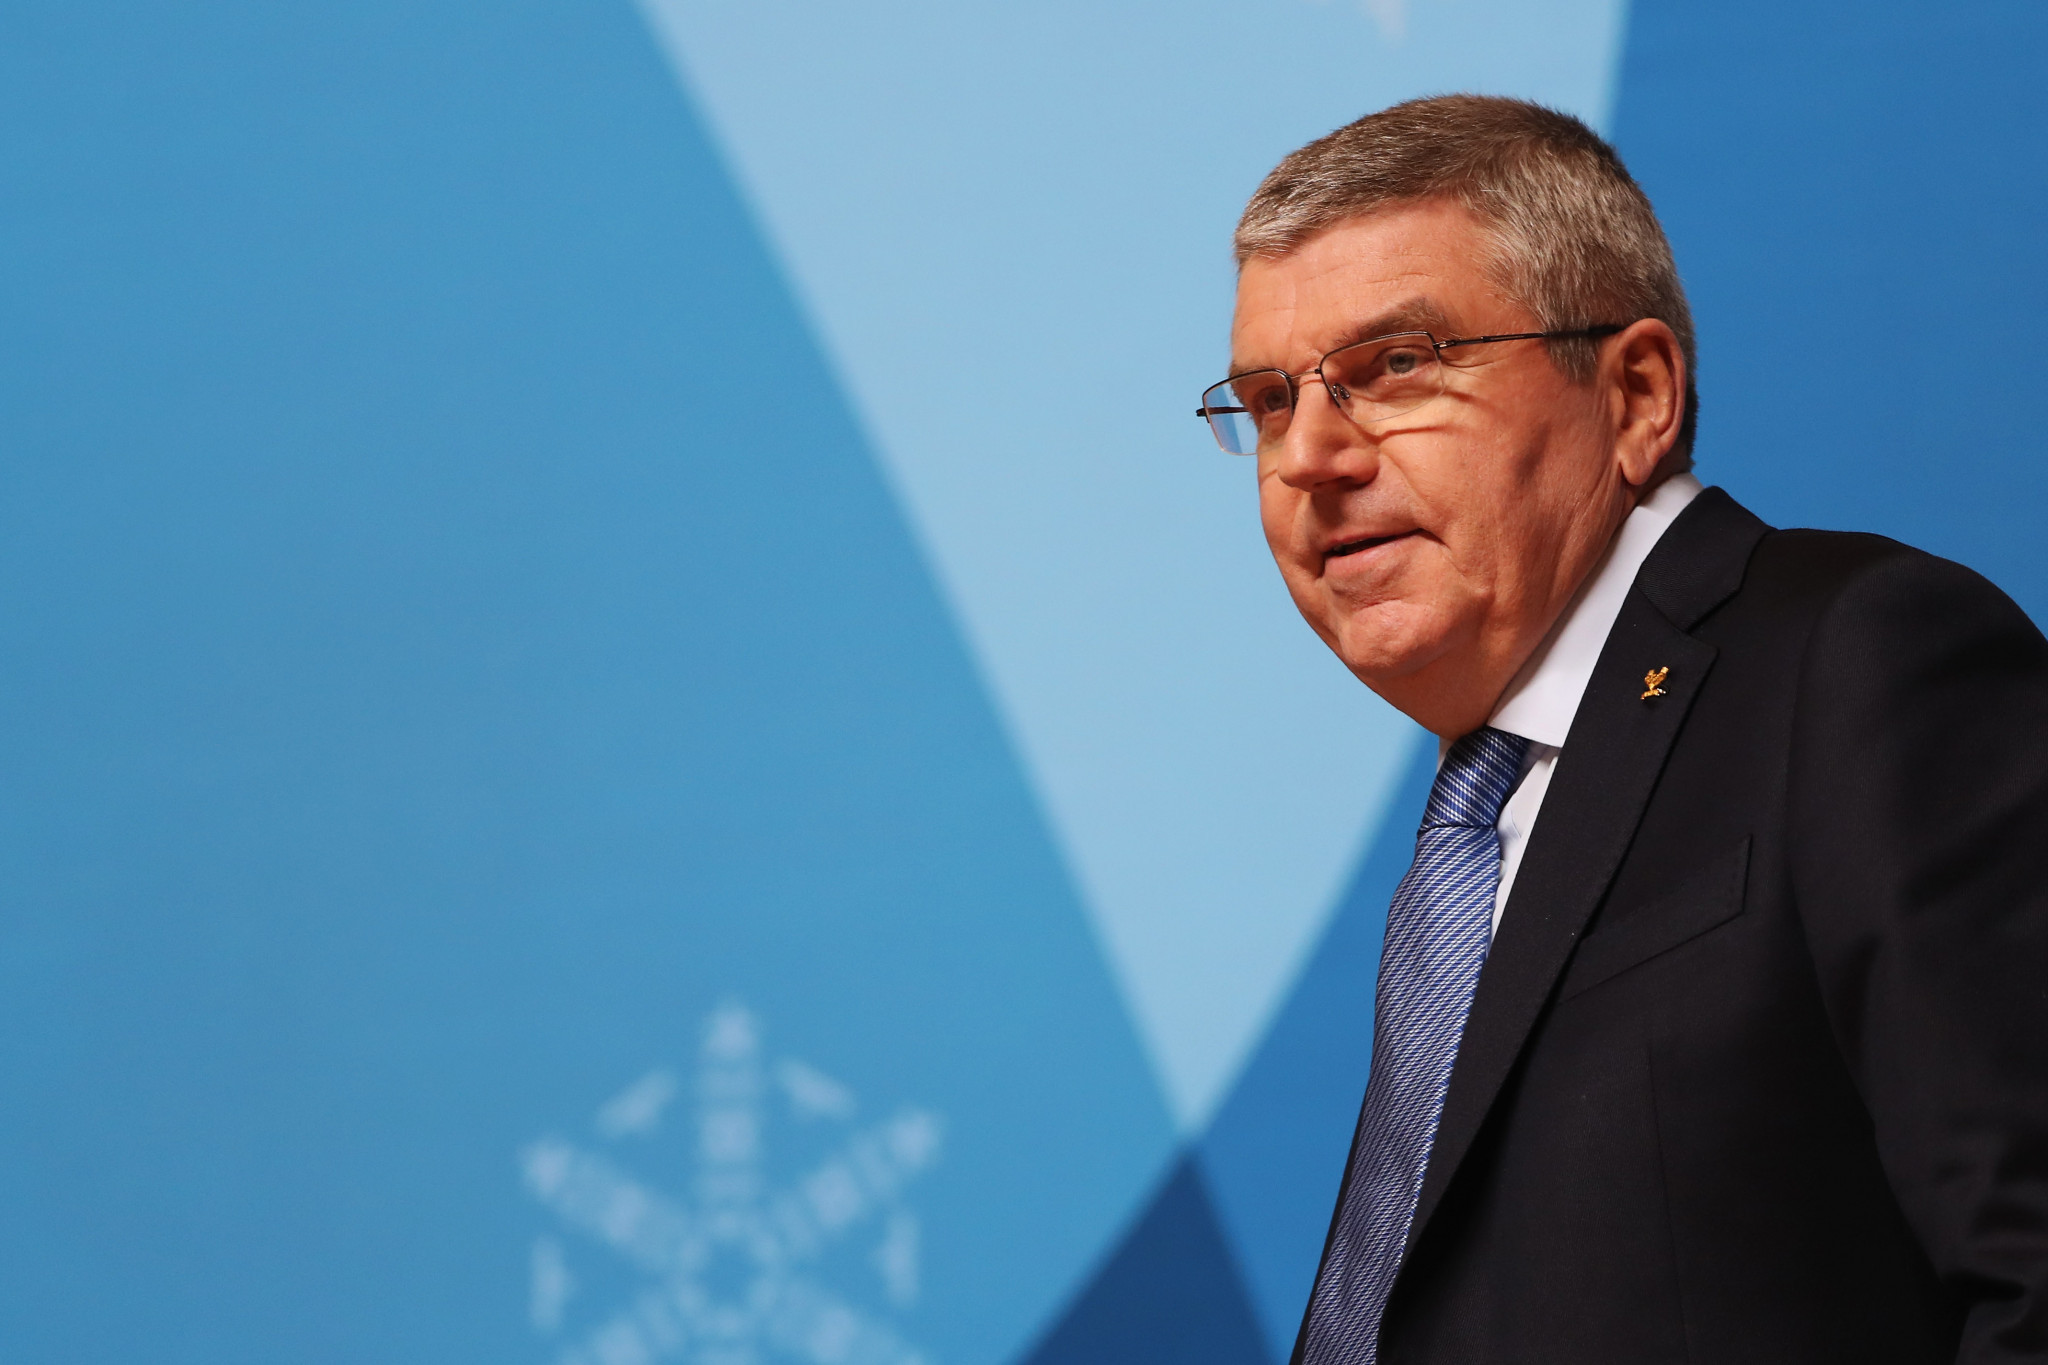 Thomas Bach hit out at the Court of Arbitration for Sport decision today ©Getty Images